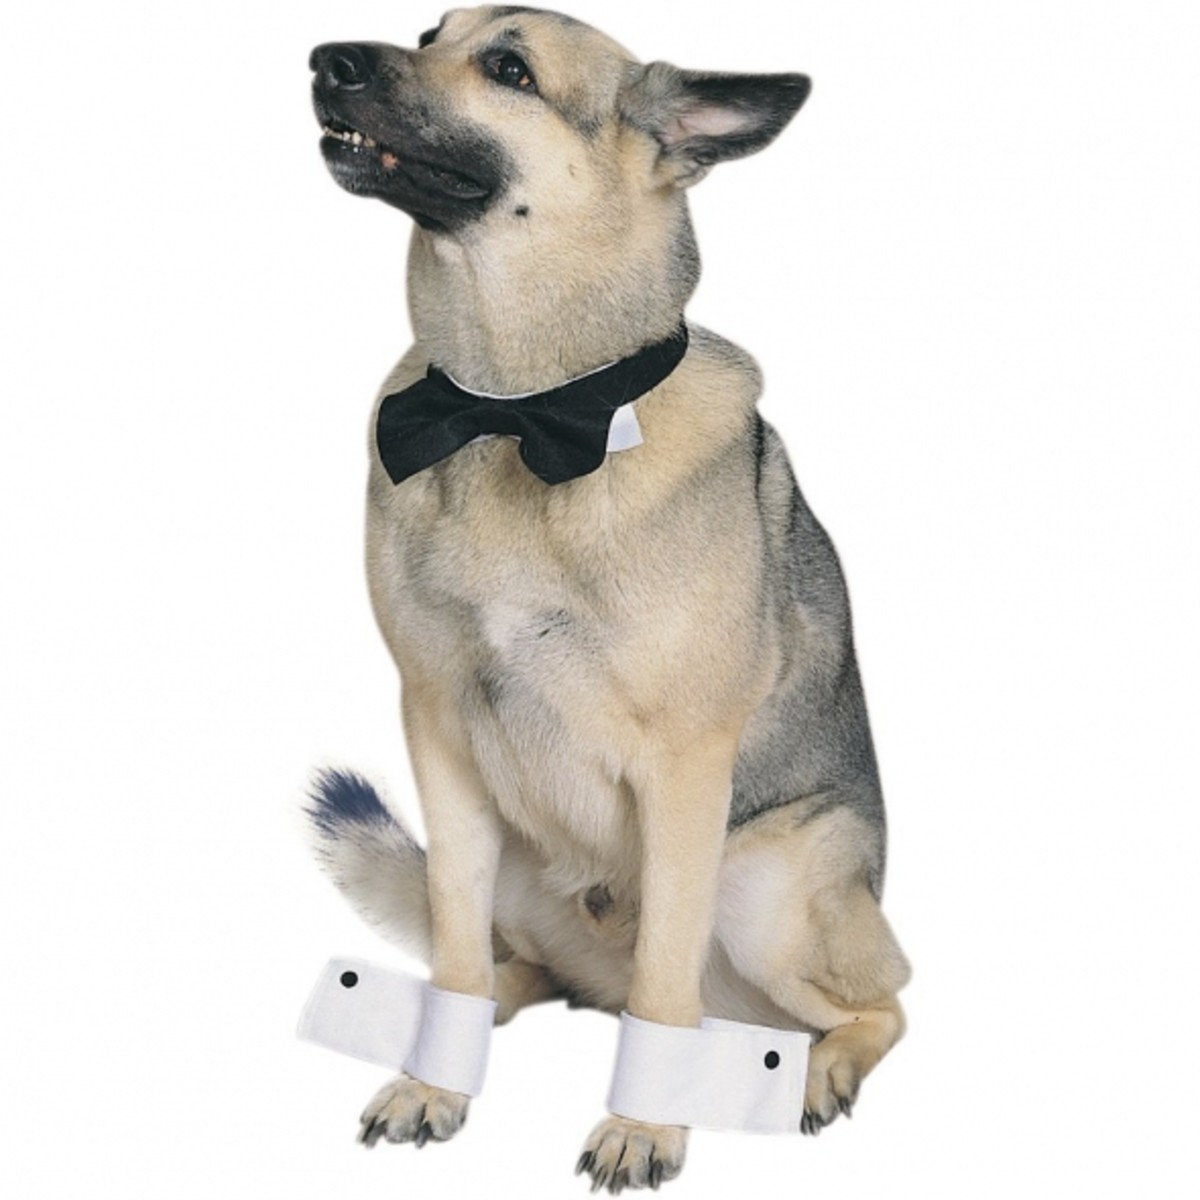 Big Dog Costumes On Parade Hubpages